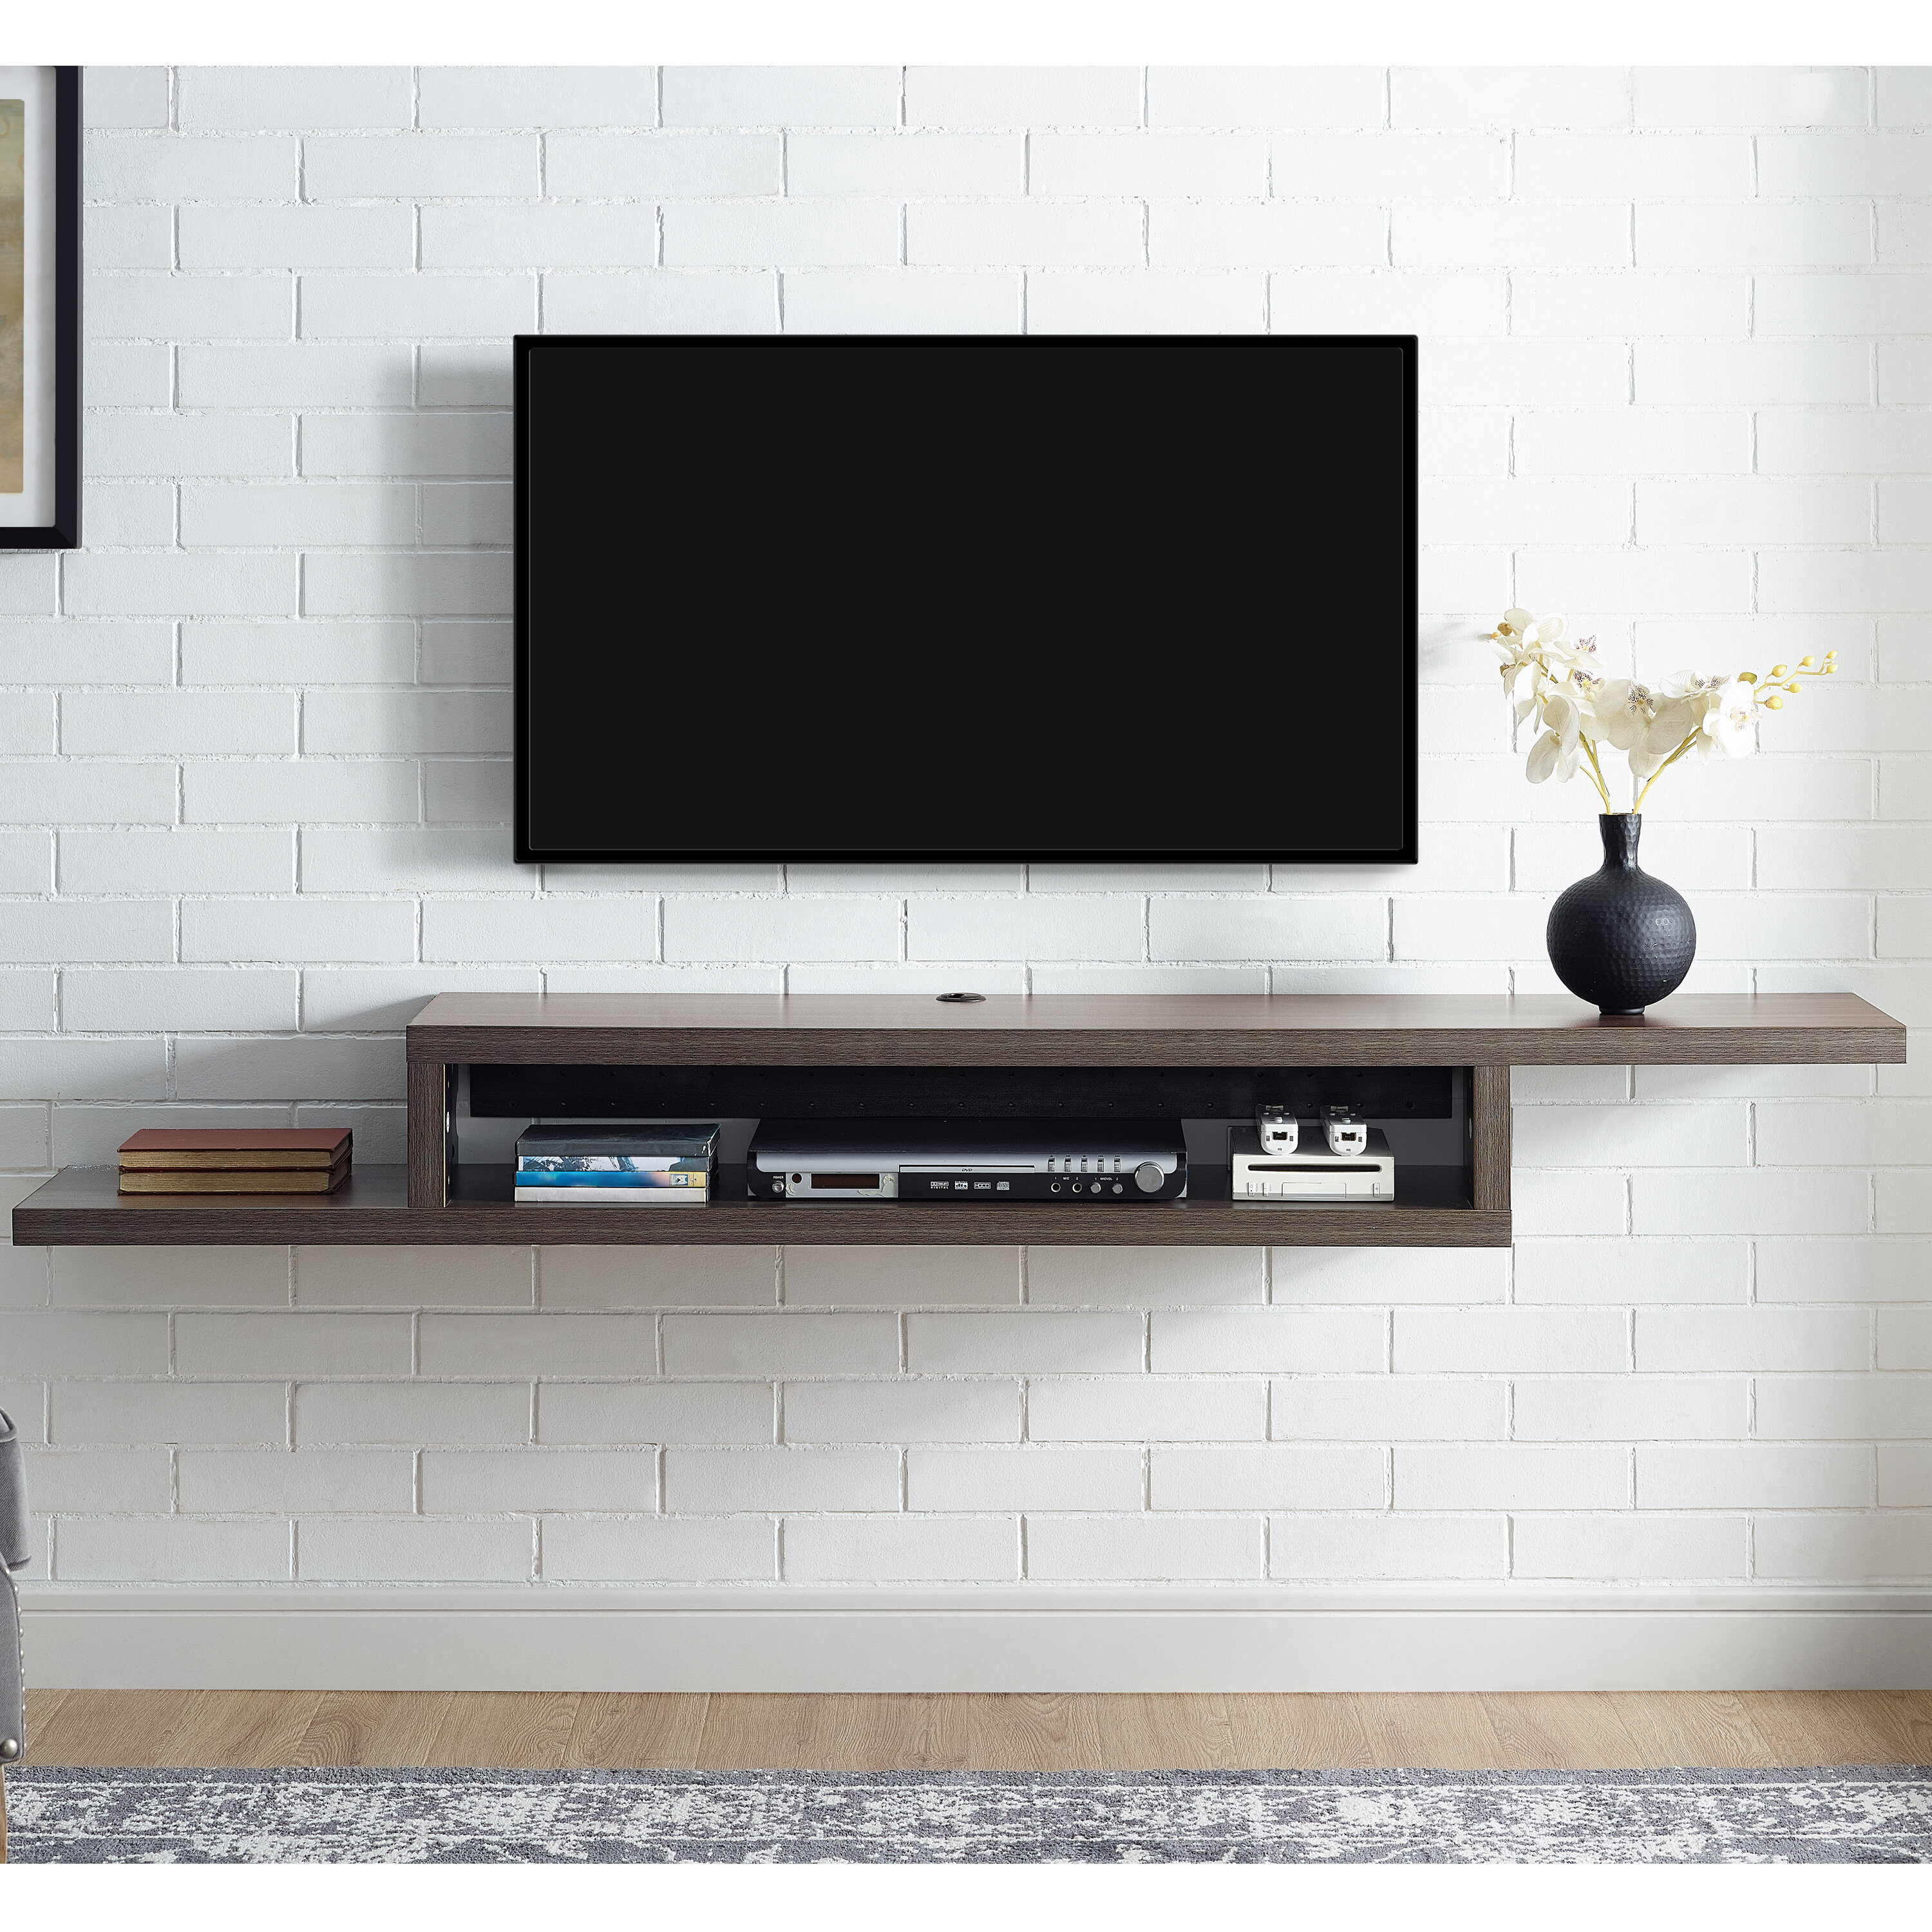 martin home furnishings ascend 60 asymmetrical wall mounted rh wayfair com wall mounted component shelf wall mounted stereo component shelves